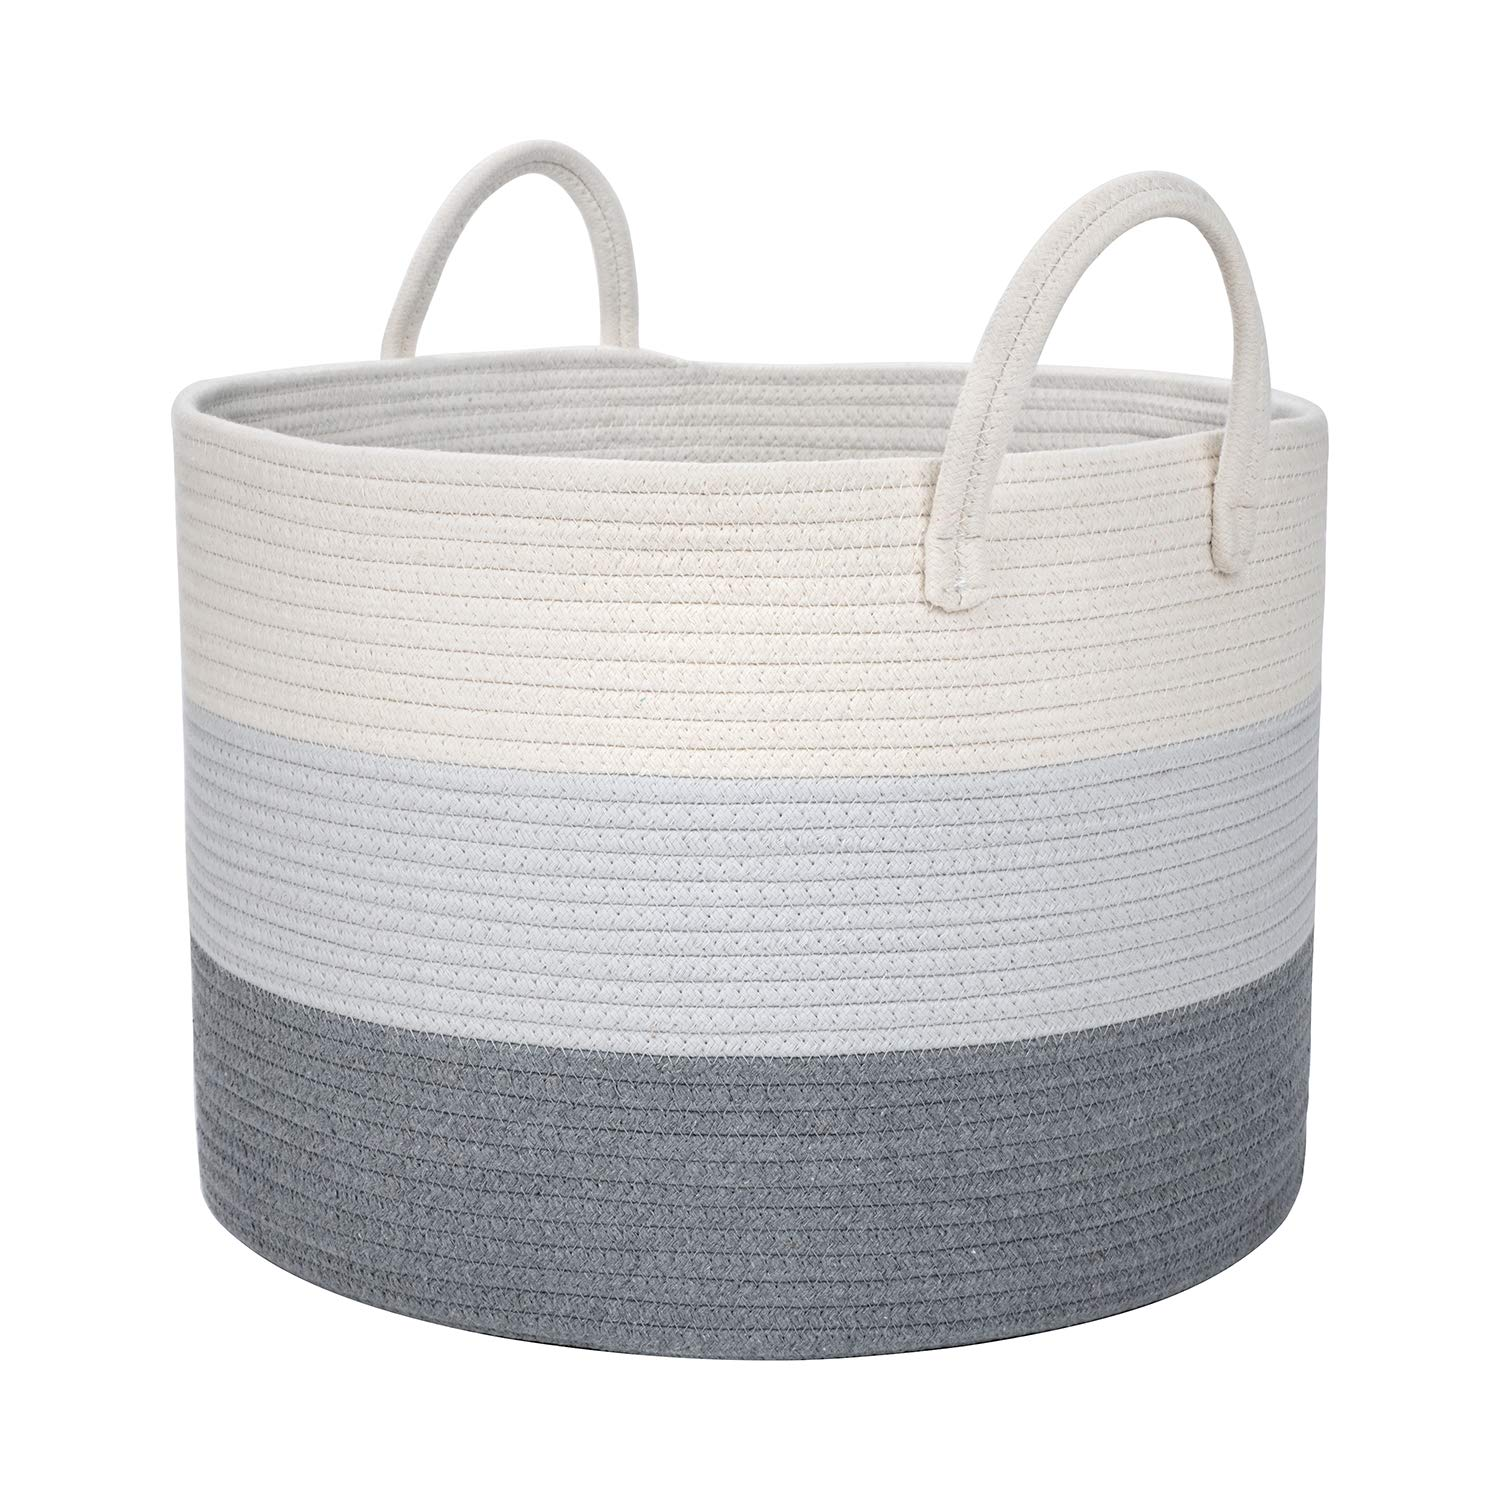 DOKEHOM X-Large Storage Baskets -19.7 Inches(D) x 13 Inches(H)- Cotton Rope Basket Woven Baby Laundry Basket with Handle for Diaper Toy Cute Neutral Home Decor (White/Grey, XL)